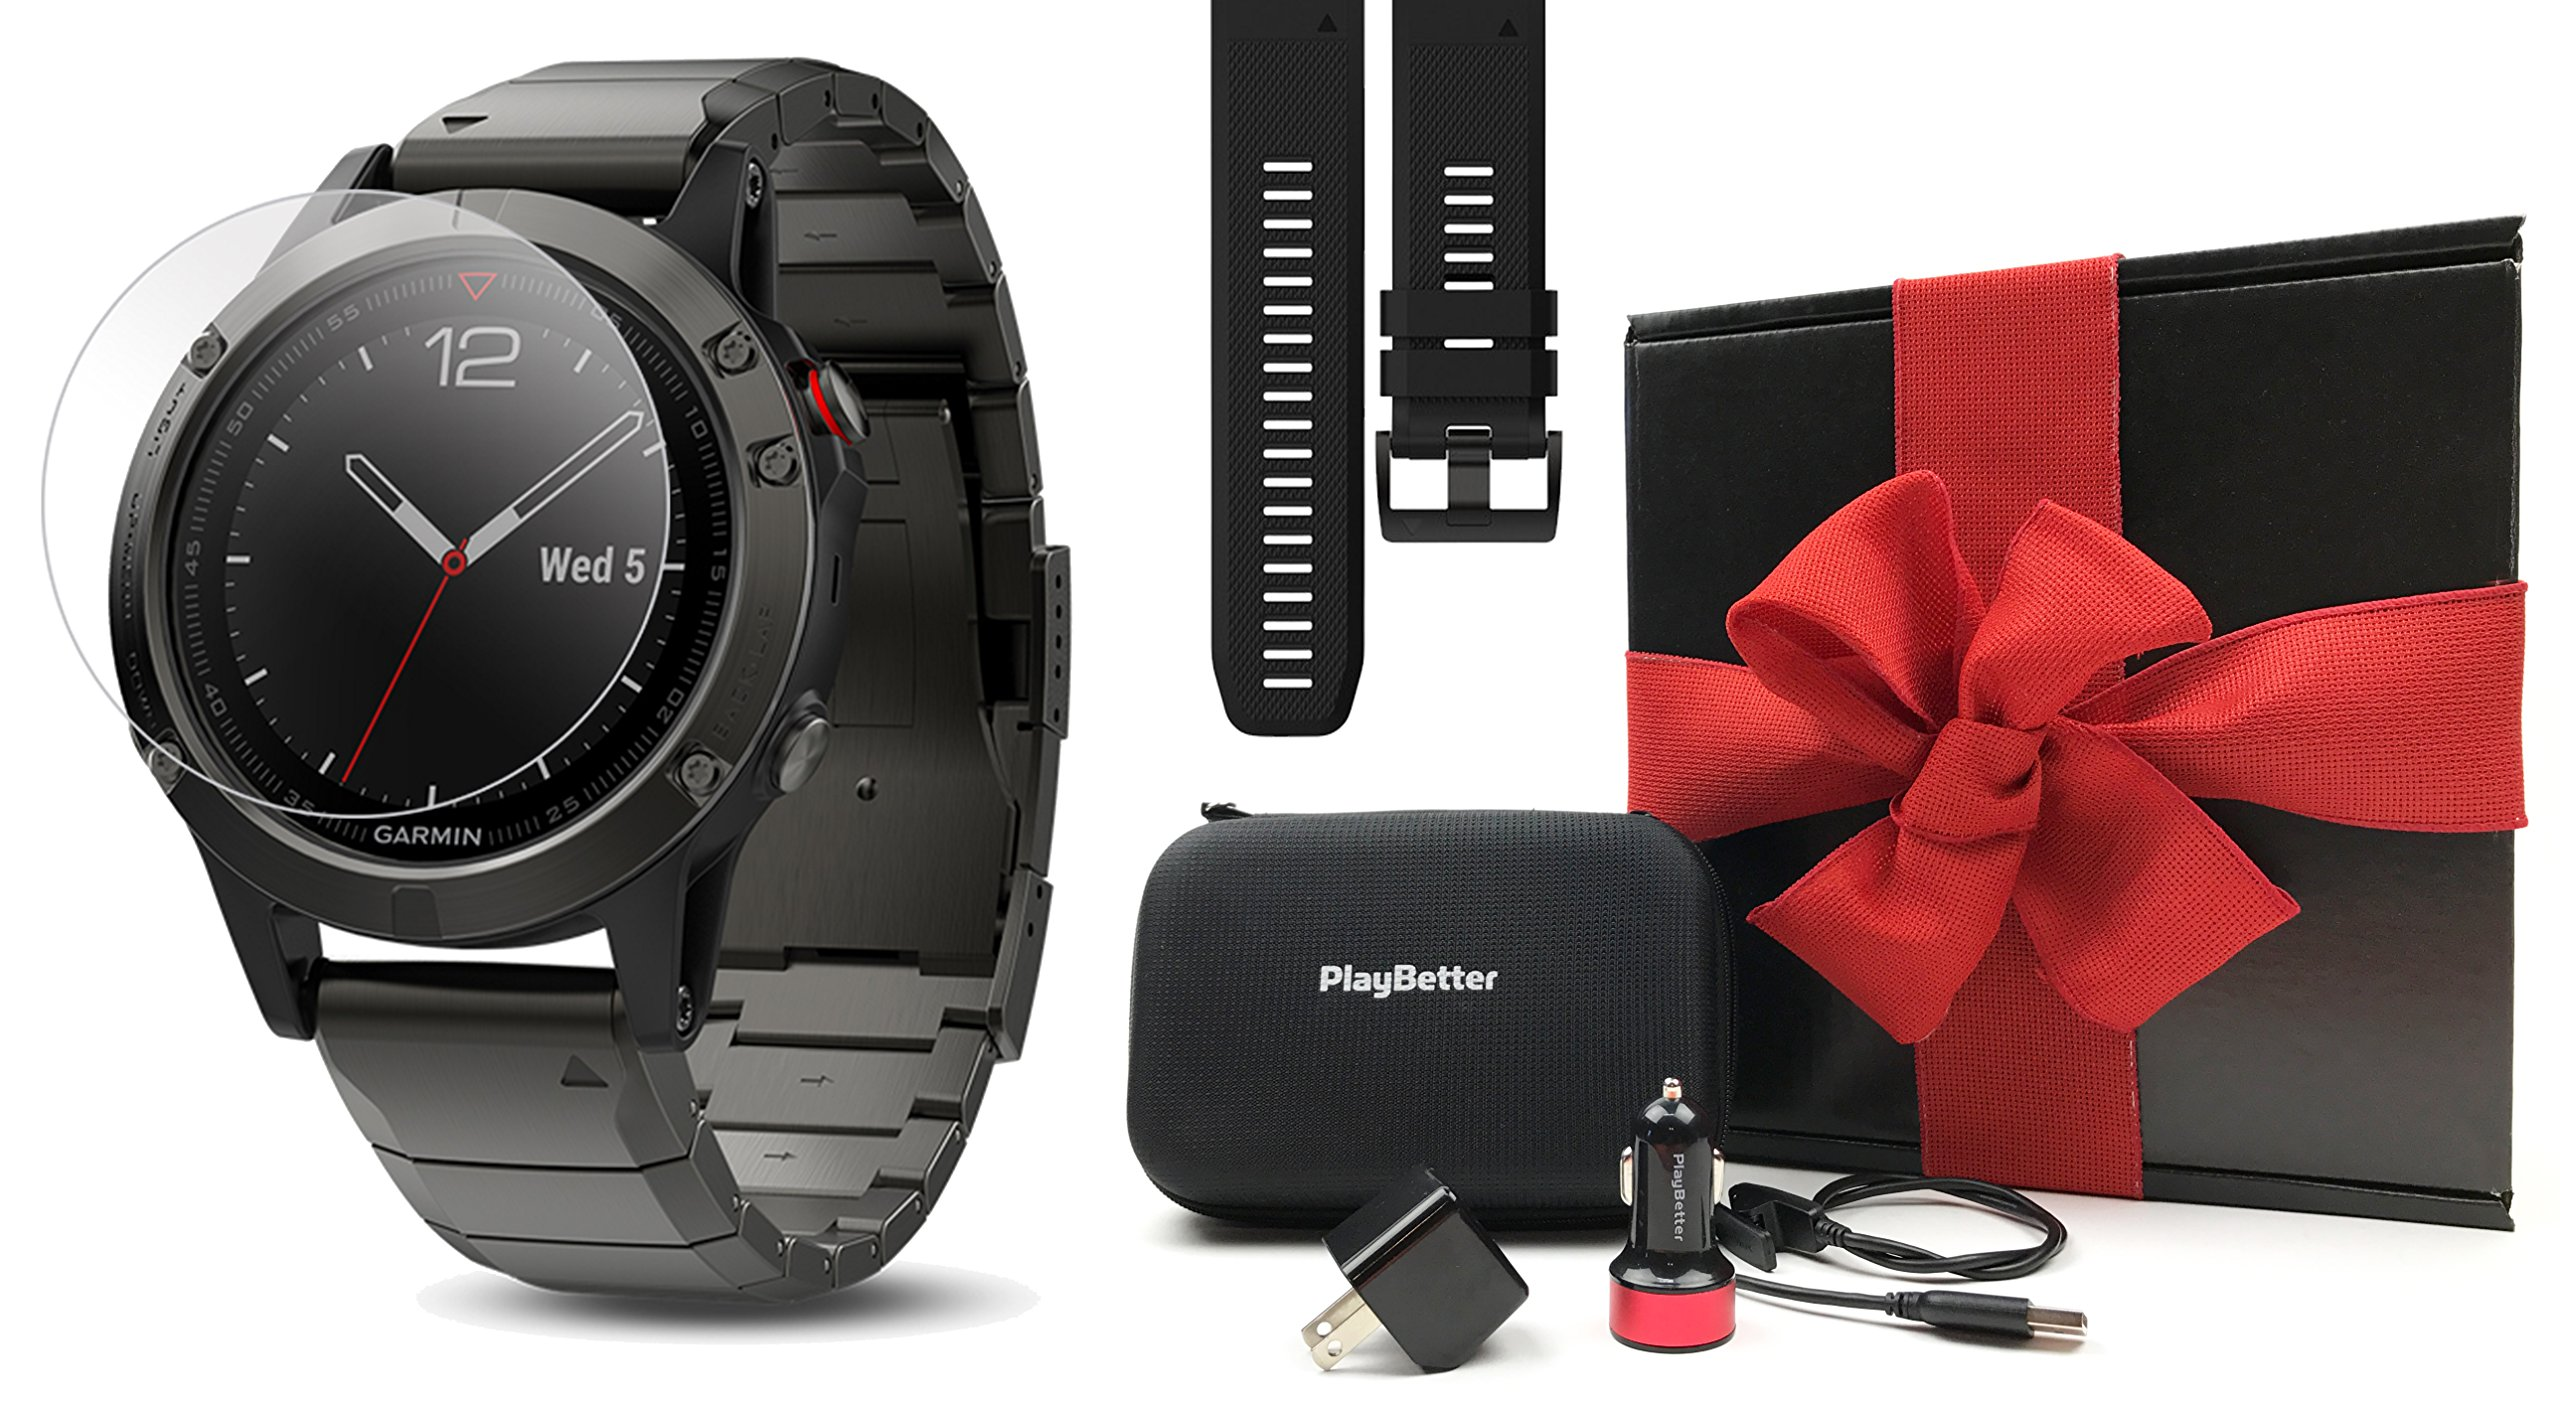 Garmin fenix 5 Sapphire (Slate Gray with Metal Band) GIFT BOX | Bundle includes Extra Silicone Band (Black), Screen Protector, PlayBetter USB Car/Wall Adapter, Protective Case | Multi-Sport GPS Watch